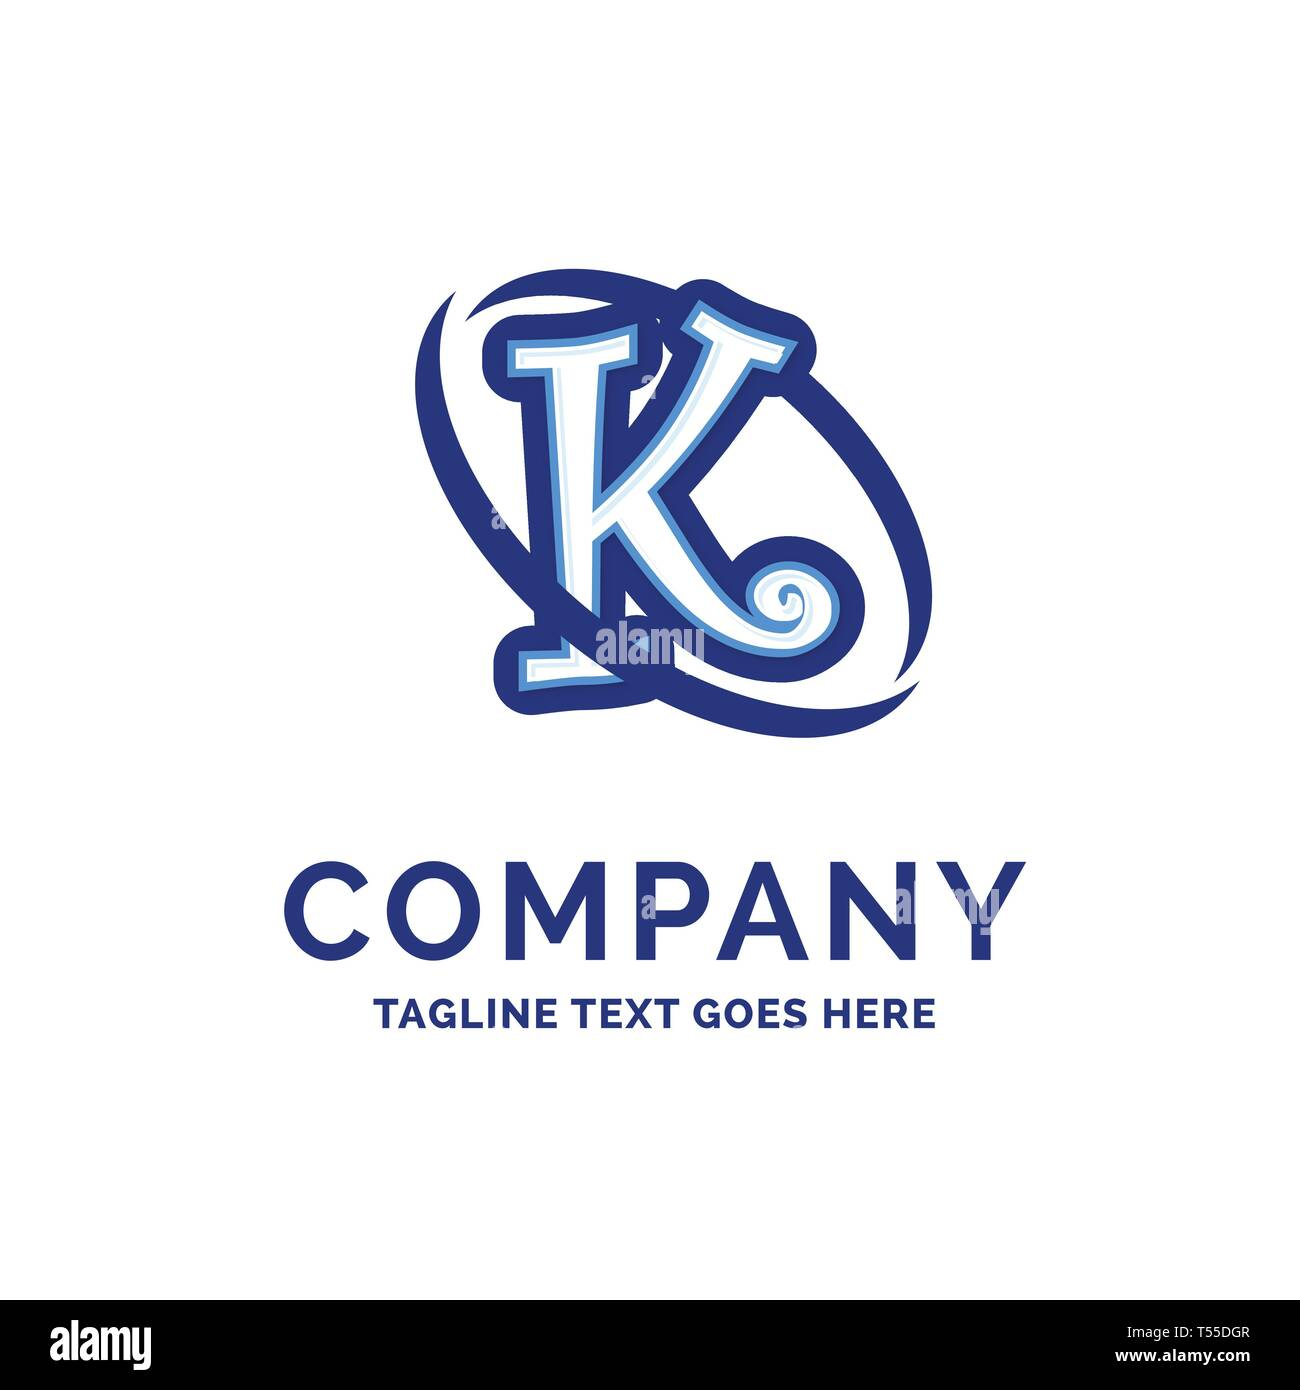 K Company Name Design Blue Logo Design Logo Template Brand